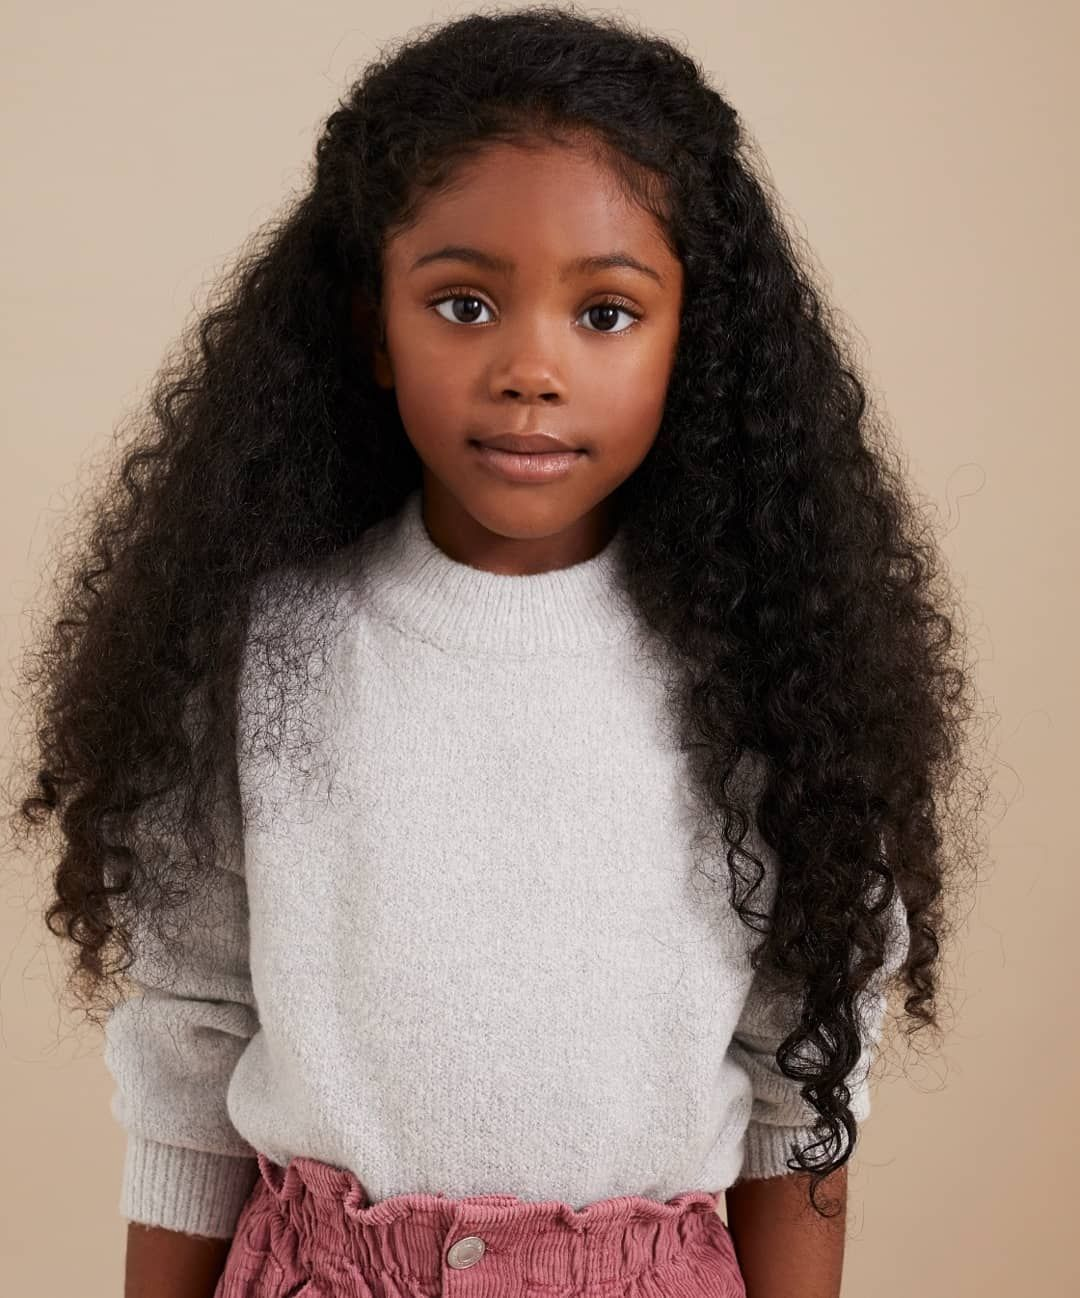 Santanna On Instagram More Images From San S Recent Updates With Helenmarsdenphotography Beautiful Black Babies Kids Hairstyles Cute Black Babies